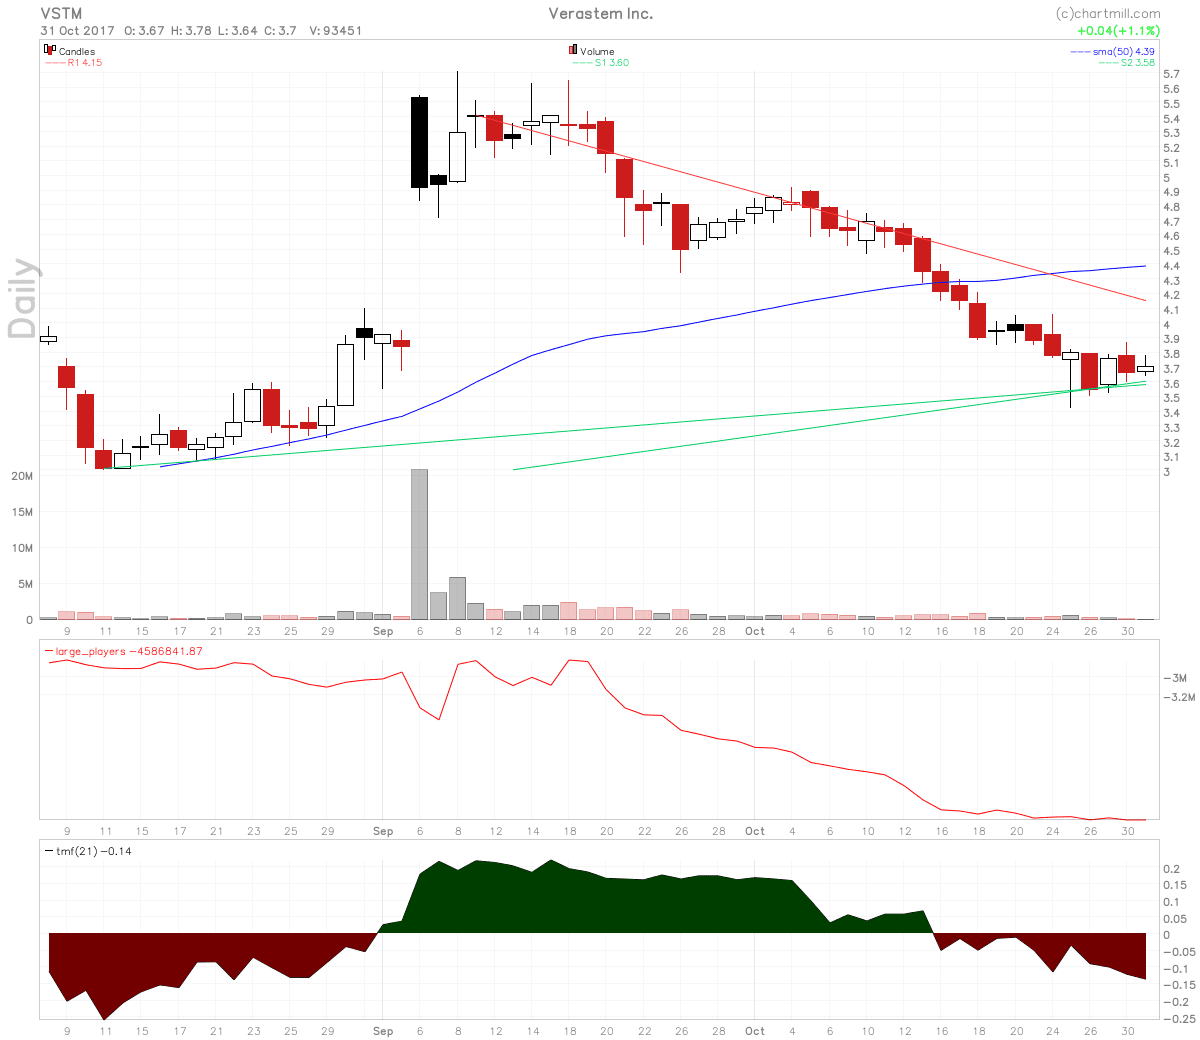 Waiting for a consolidation in Verastem Inc stock.